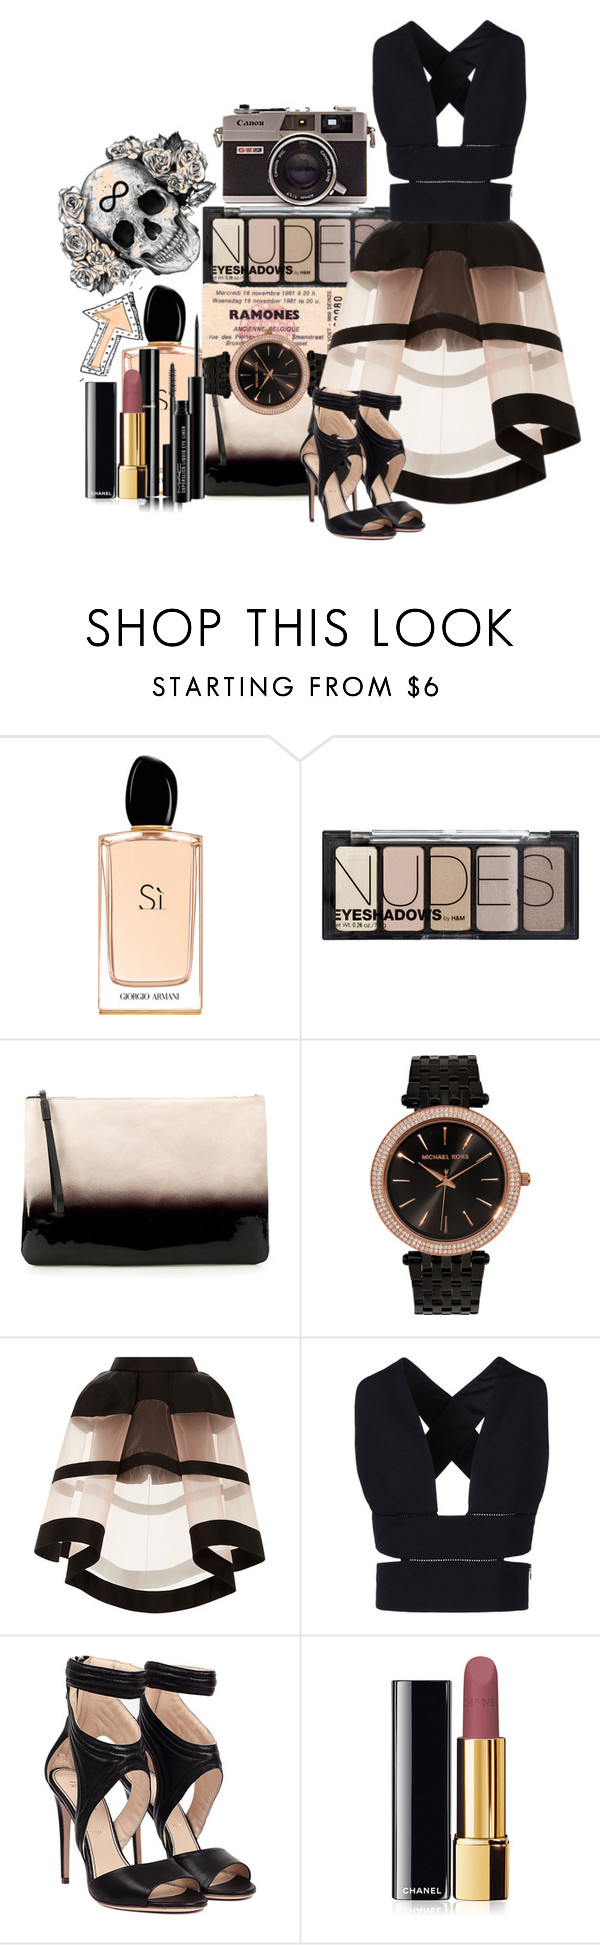 """Untitled #437"" by immalittleskyscreaper ❤ liked on Polyvore featuring Giorgio Armani, H&M, Zara, Michael Kors, Delpozo, STELLA McCARTNEY, Chanel, MAC Cosmetics, women's clothing and women"